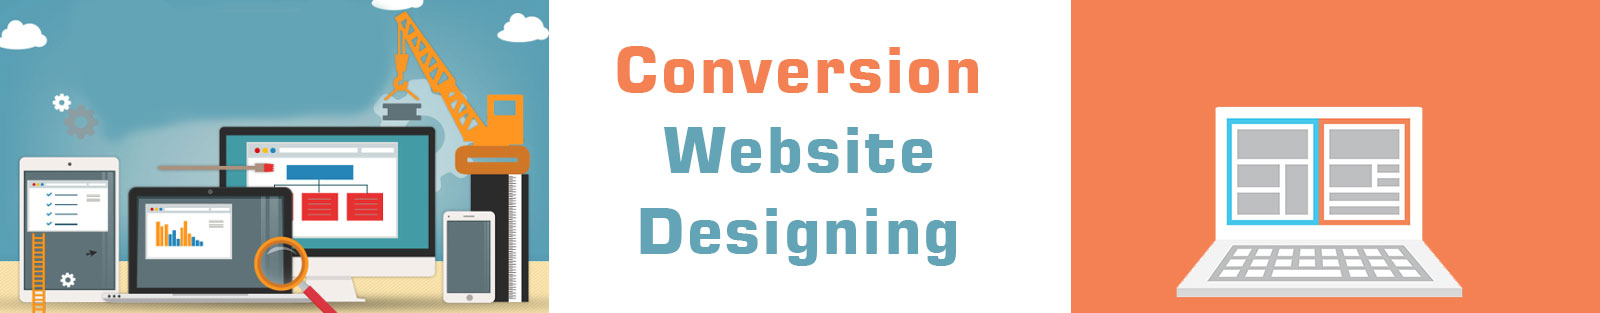 Conversion Website Designing Services